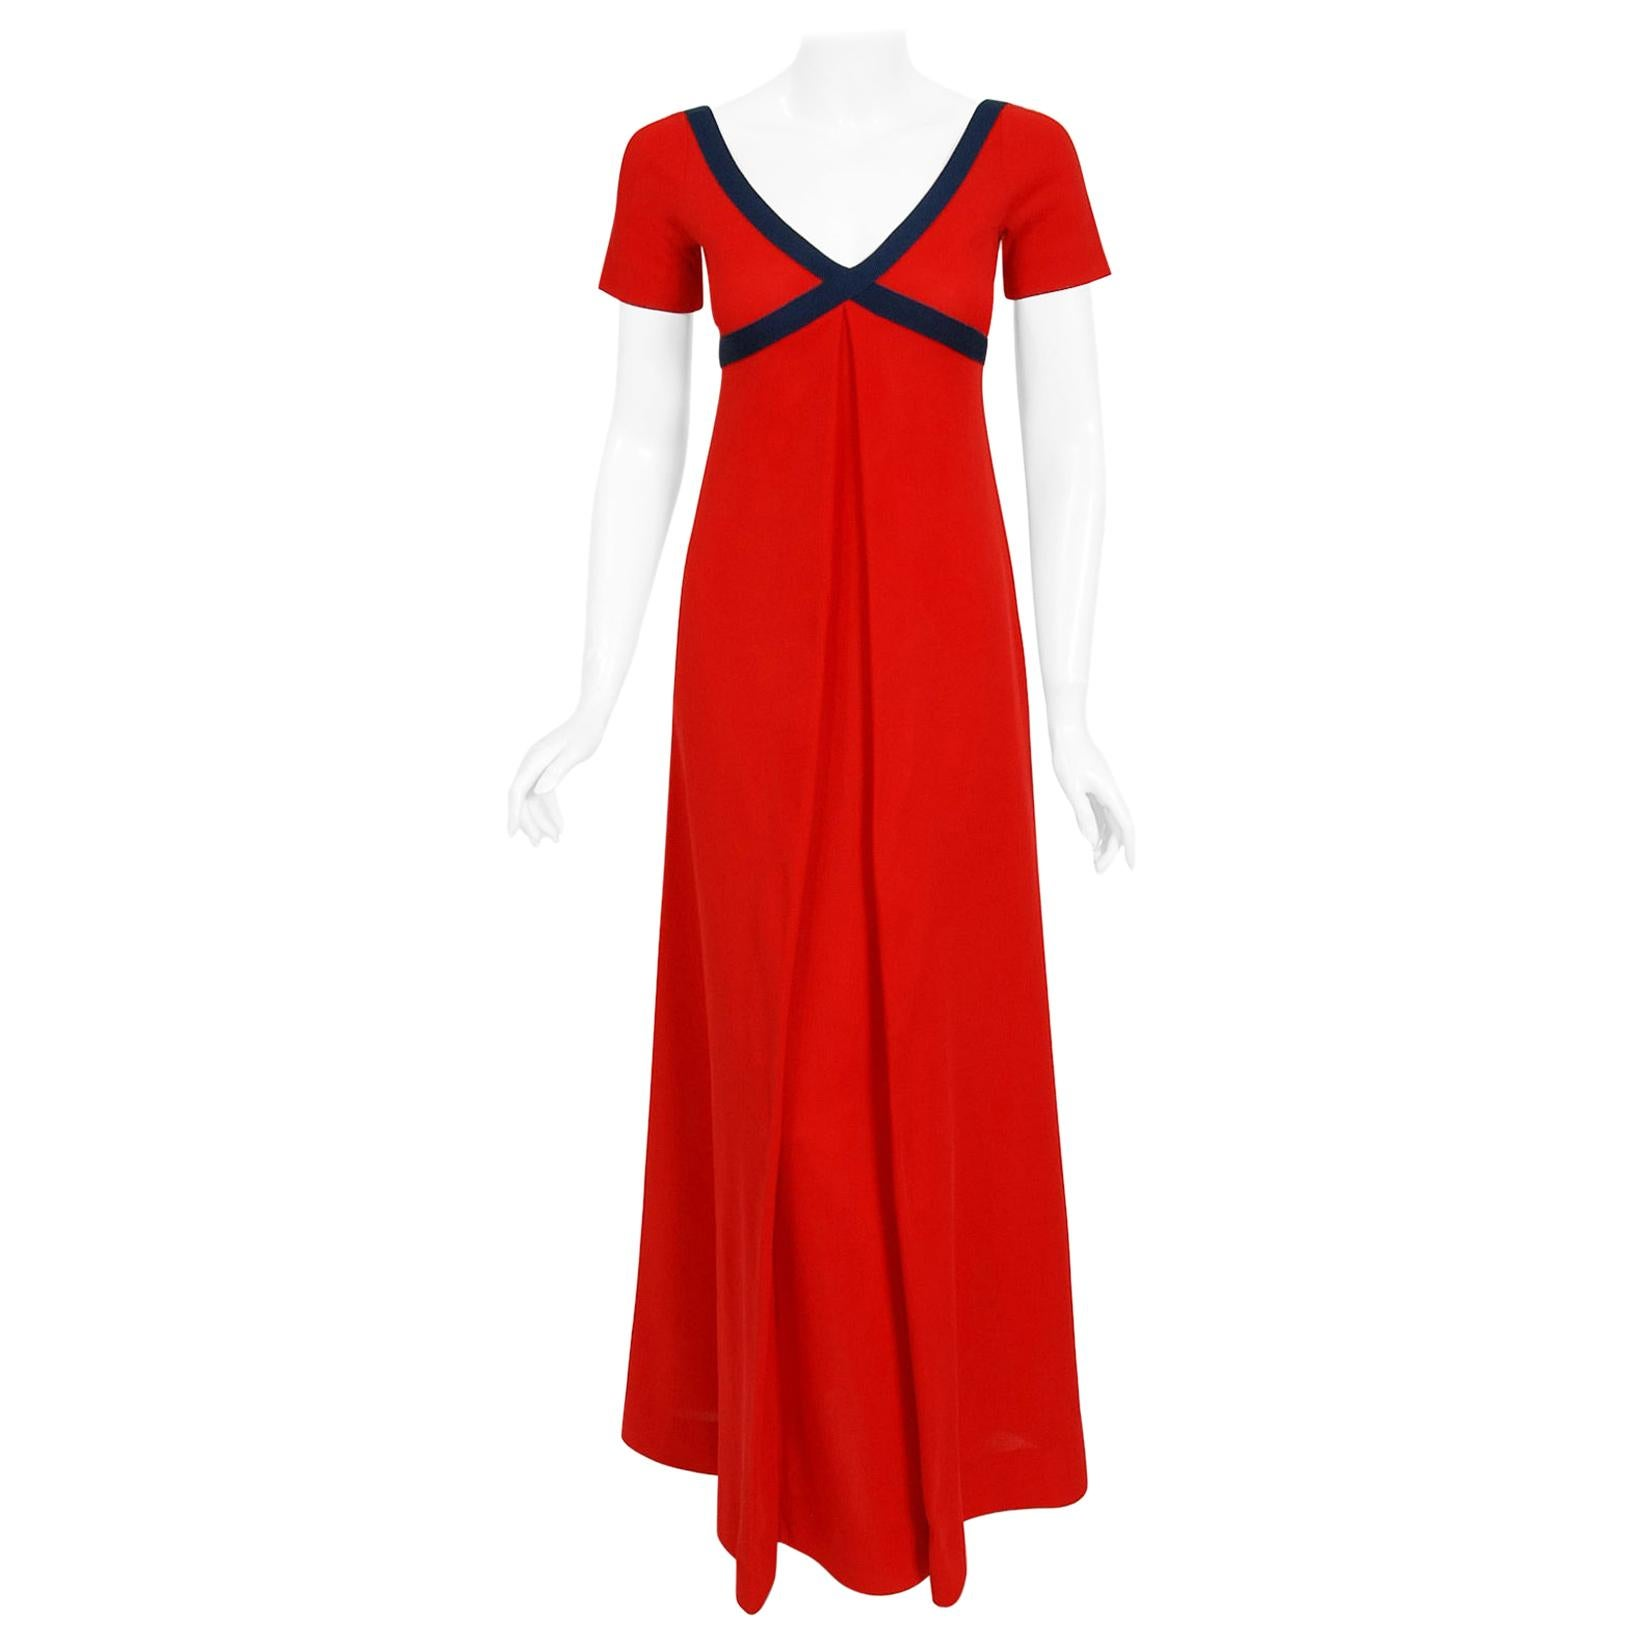 Vintage 1969 Rudi Gernreich Cross Your Heart Empire Red and Navy Knit Maxi Dress